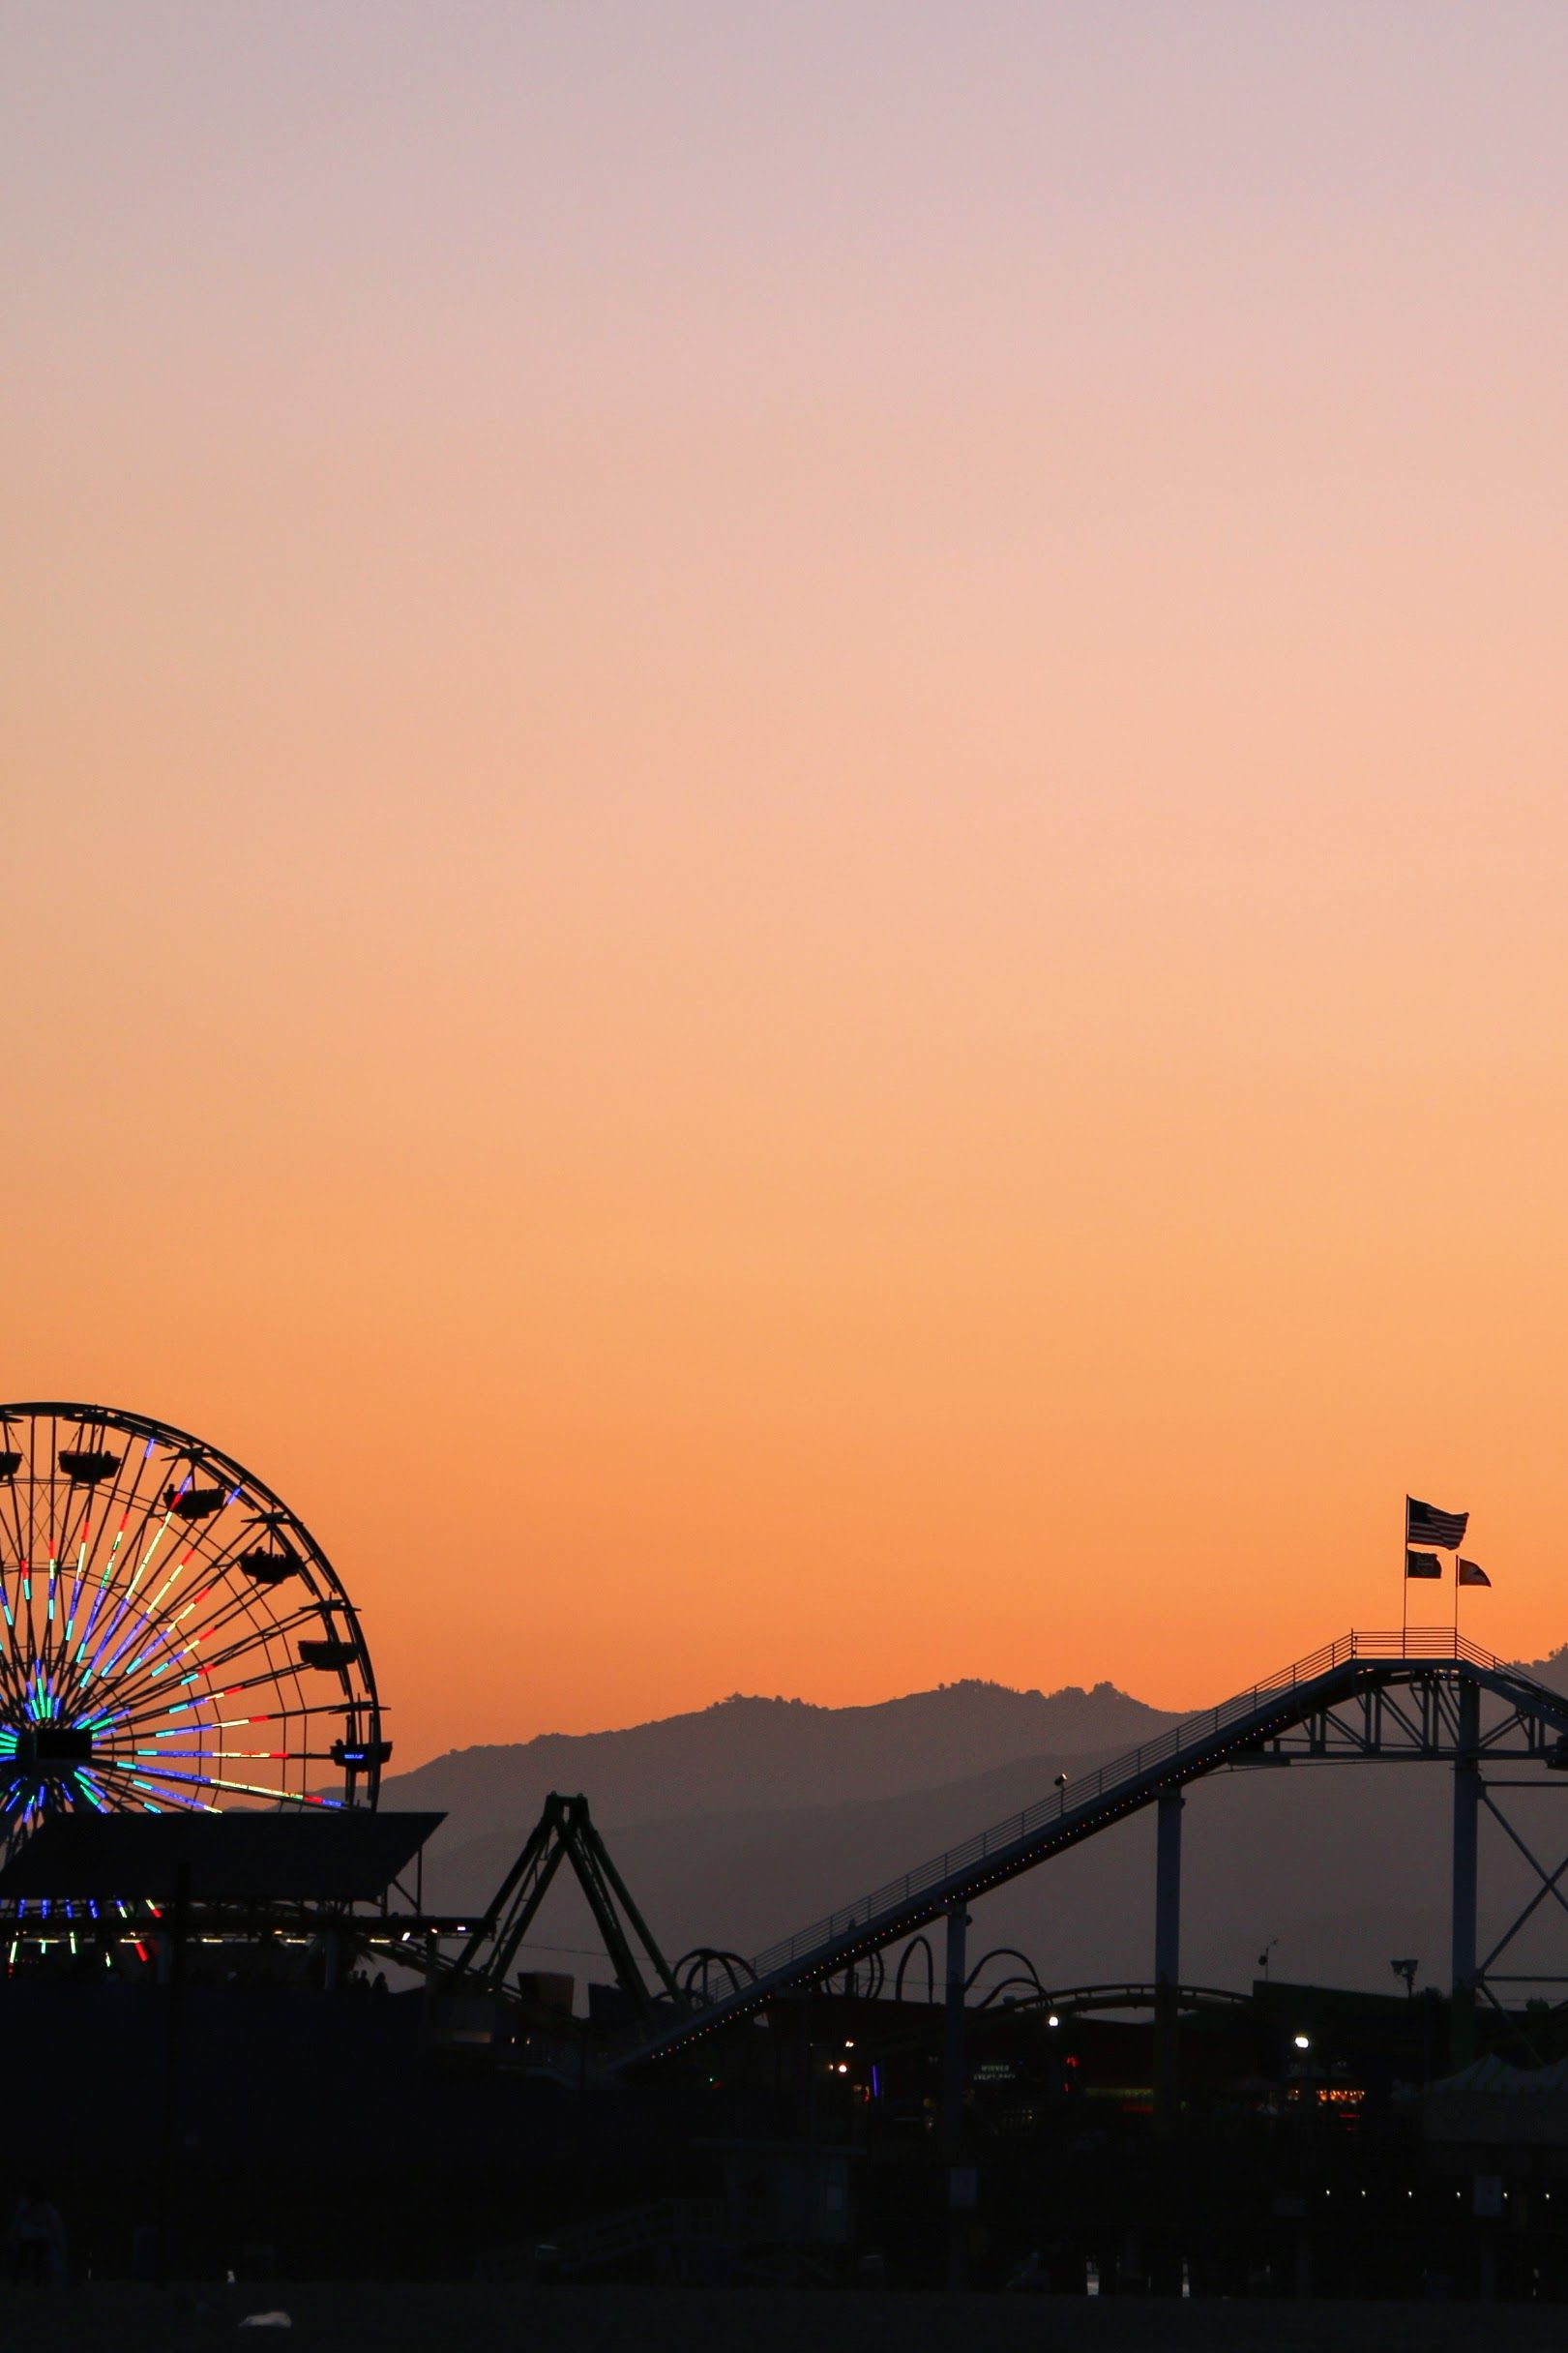 Los Angeles Sky Aesthetic City Wallpaper Aesthetic Pictures